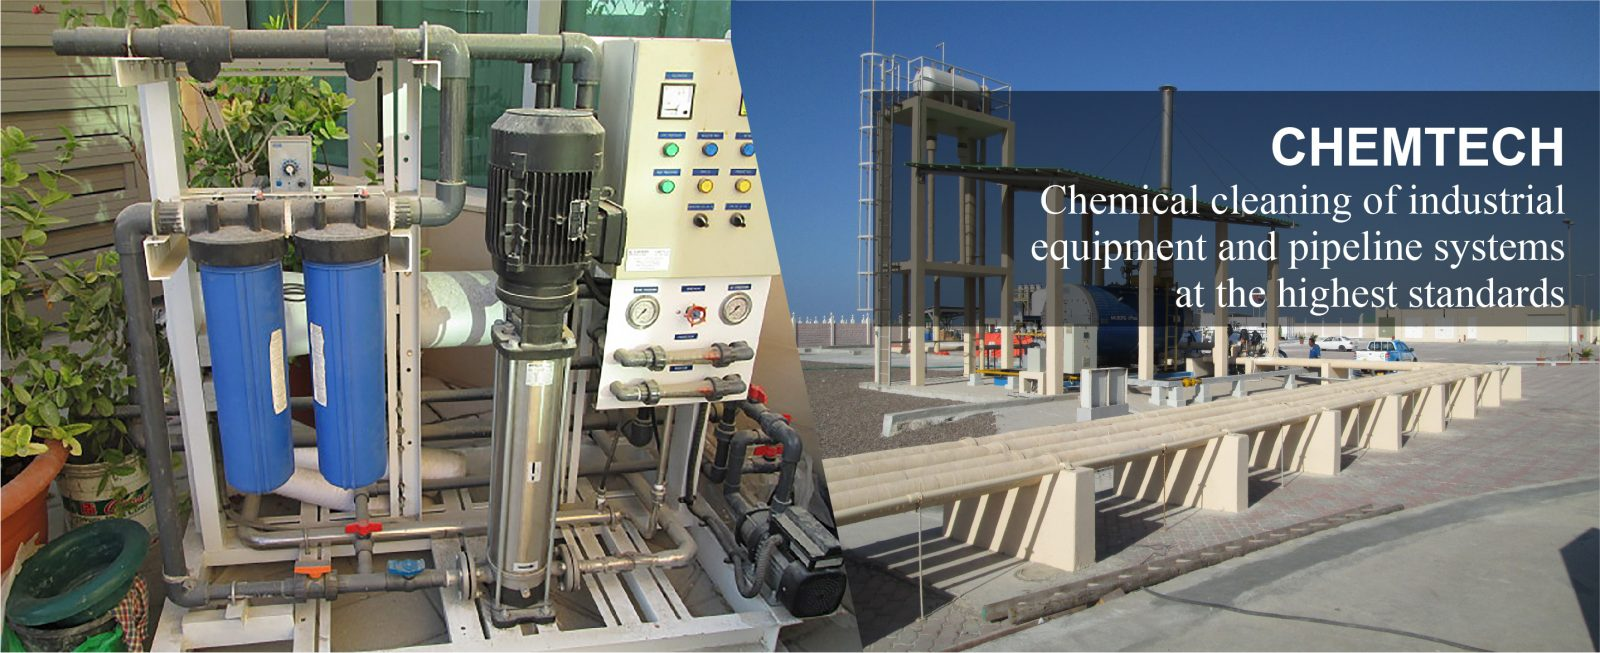 Chemtech Products